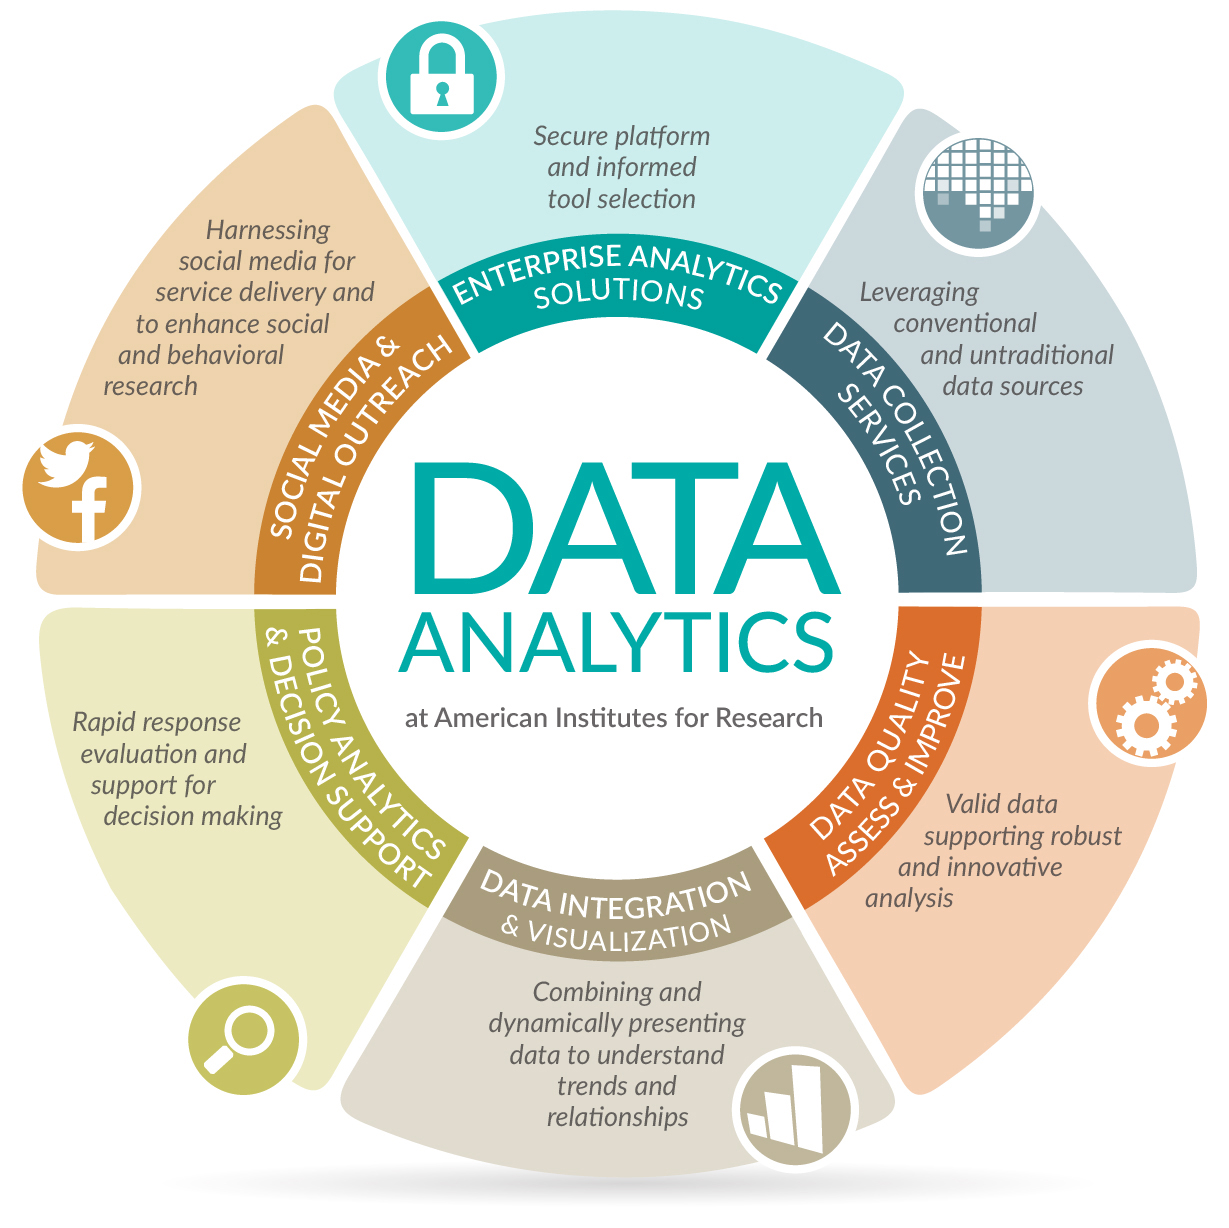 data-analytics-capabilities-infographic-2-21-01